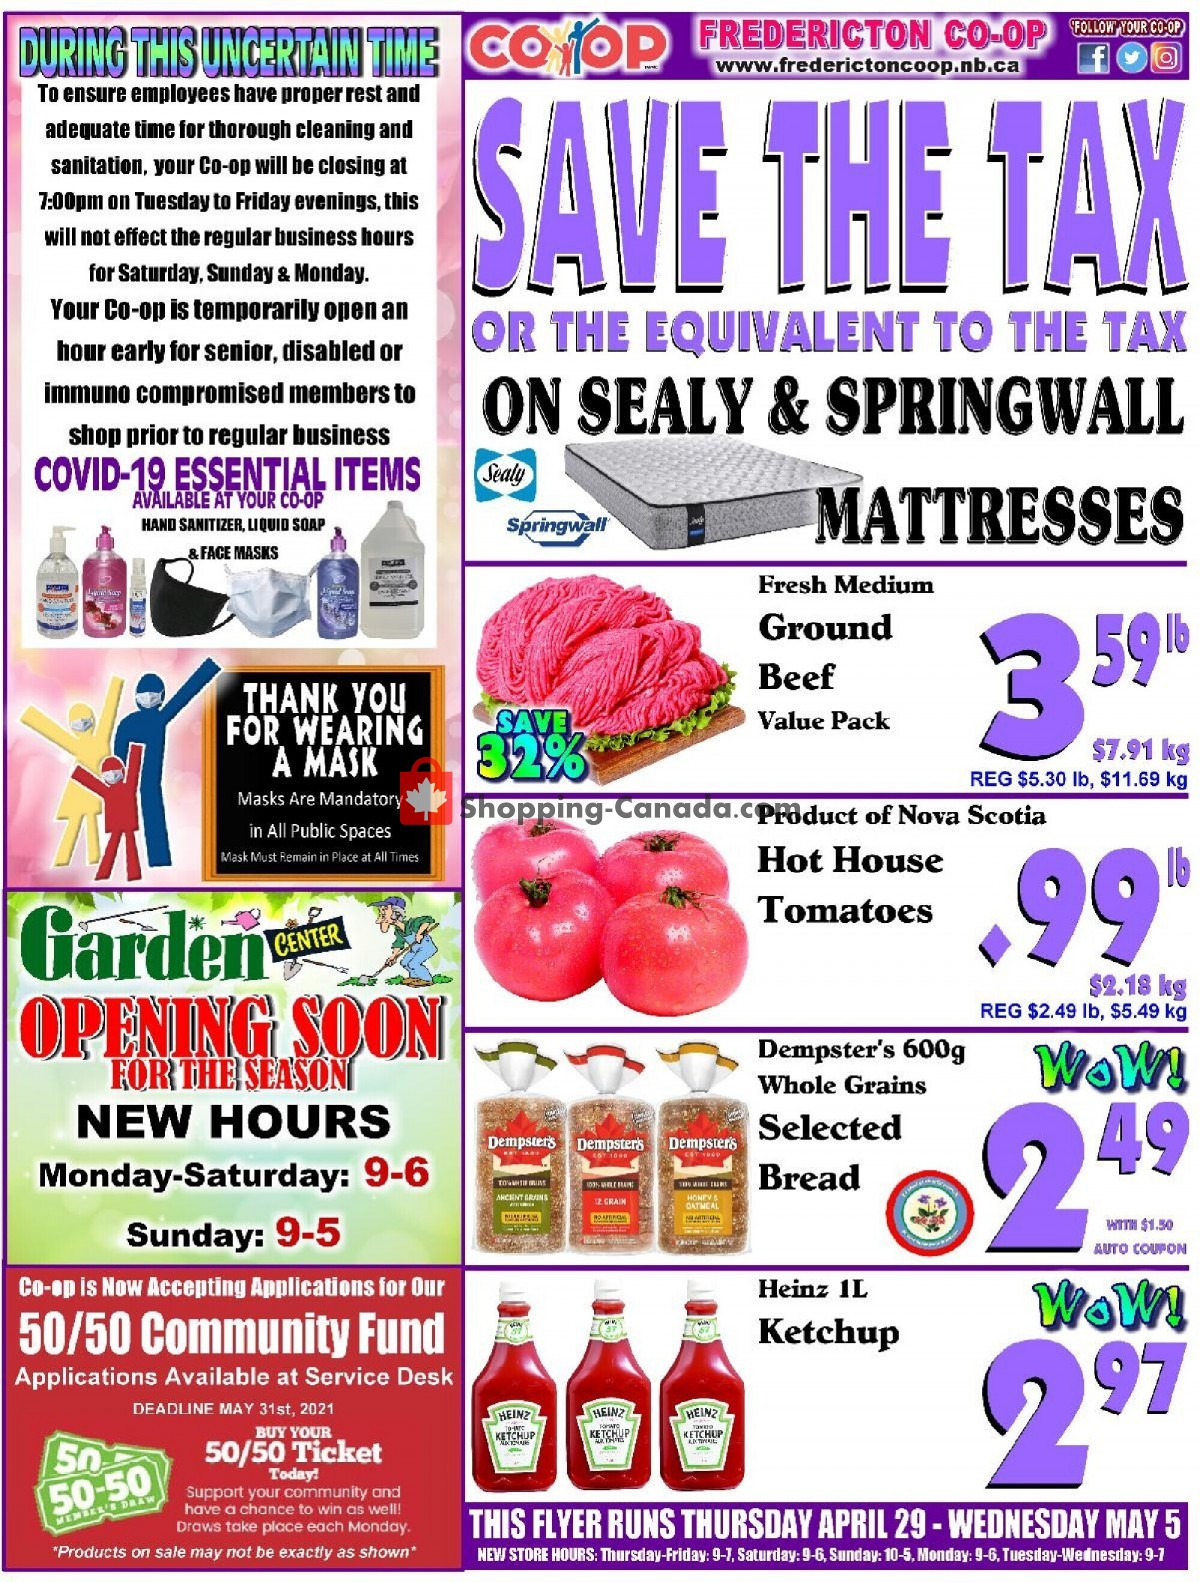 Flyer Fredericton Co-op Canada - from Thursday April 29, 2021 to Wednesday May 5, 2021